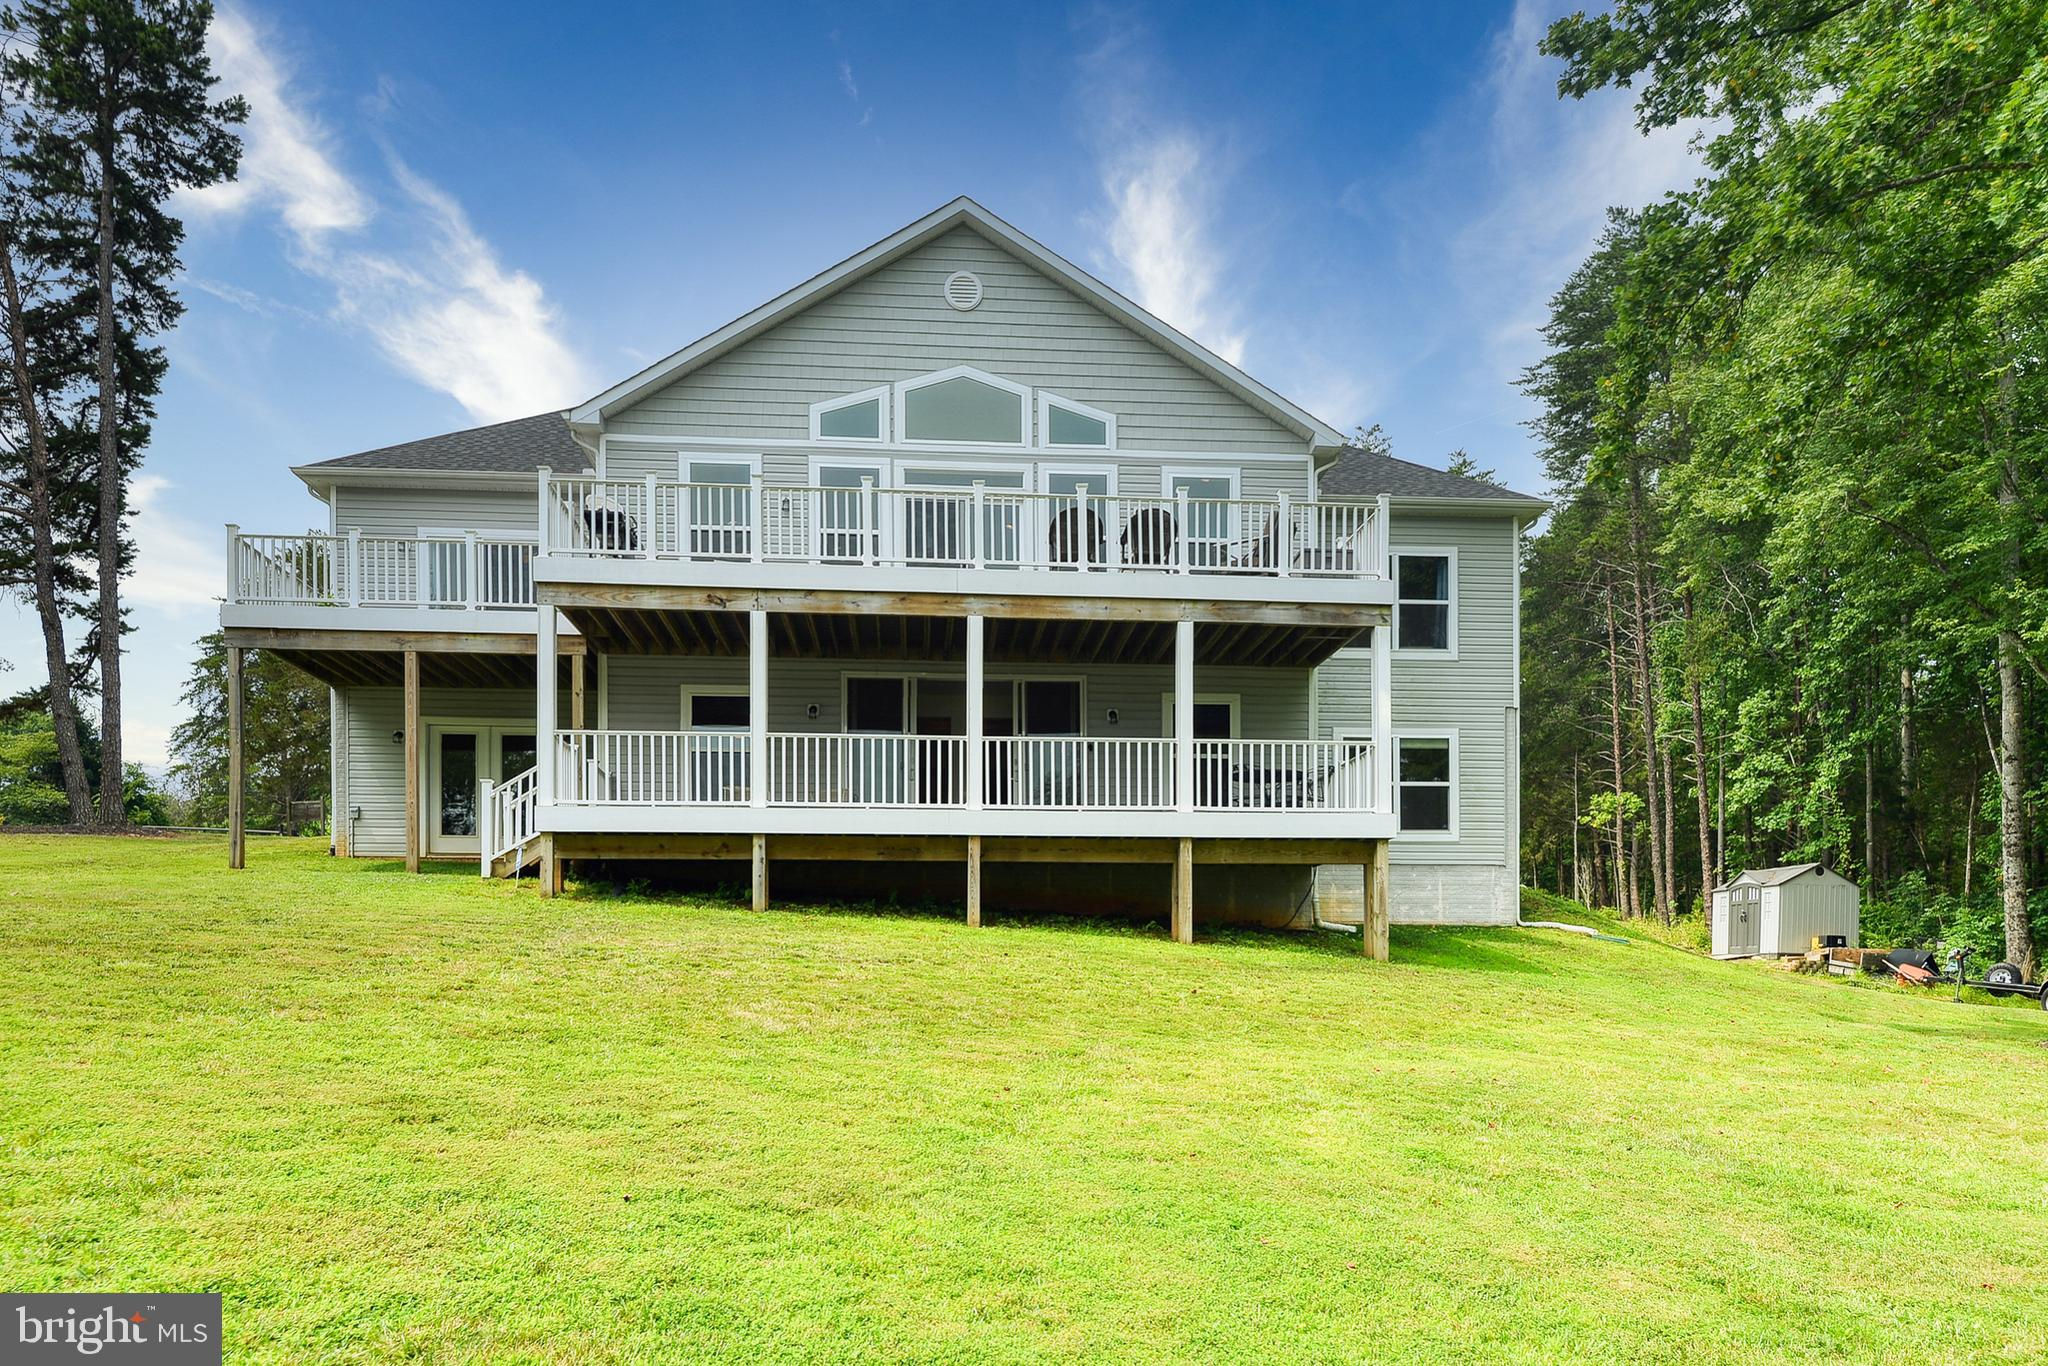 14901 Crestview Lane, Mineral, VA 23117 now has a new price of $1,425,000!